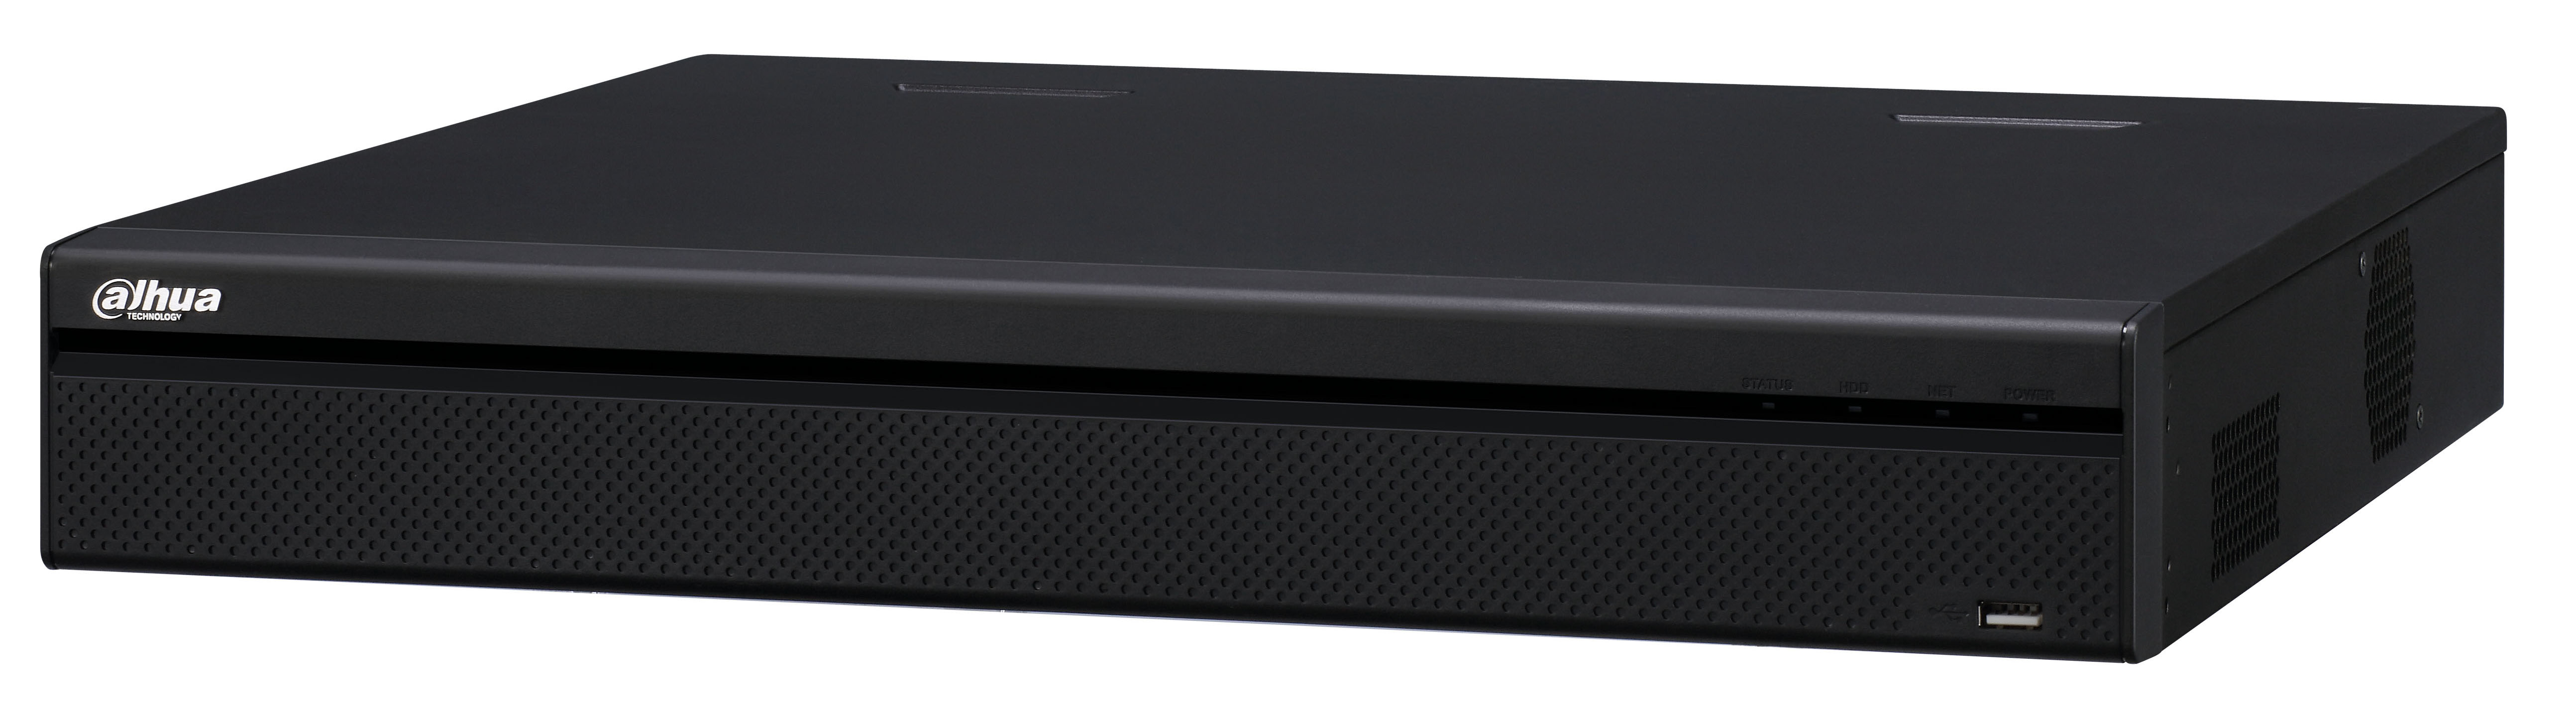 Dahua OEM 32-Channel Tribrid HD-CVI DVR: HD-CVI/Analog/IP, 2x HDMI/VGA/BNC,  Gigabit, eSATA,4x SATA, 4x Audio, Alarm, 1 5U, 3yr